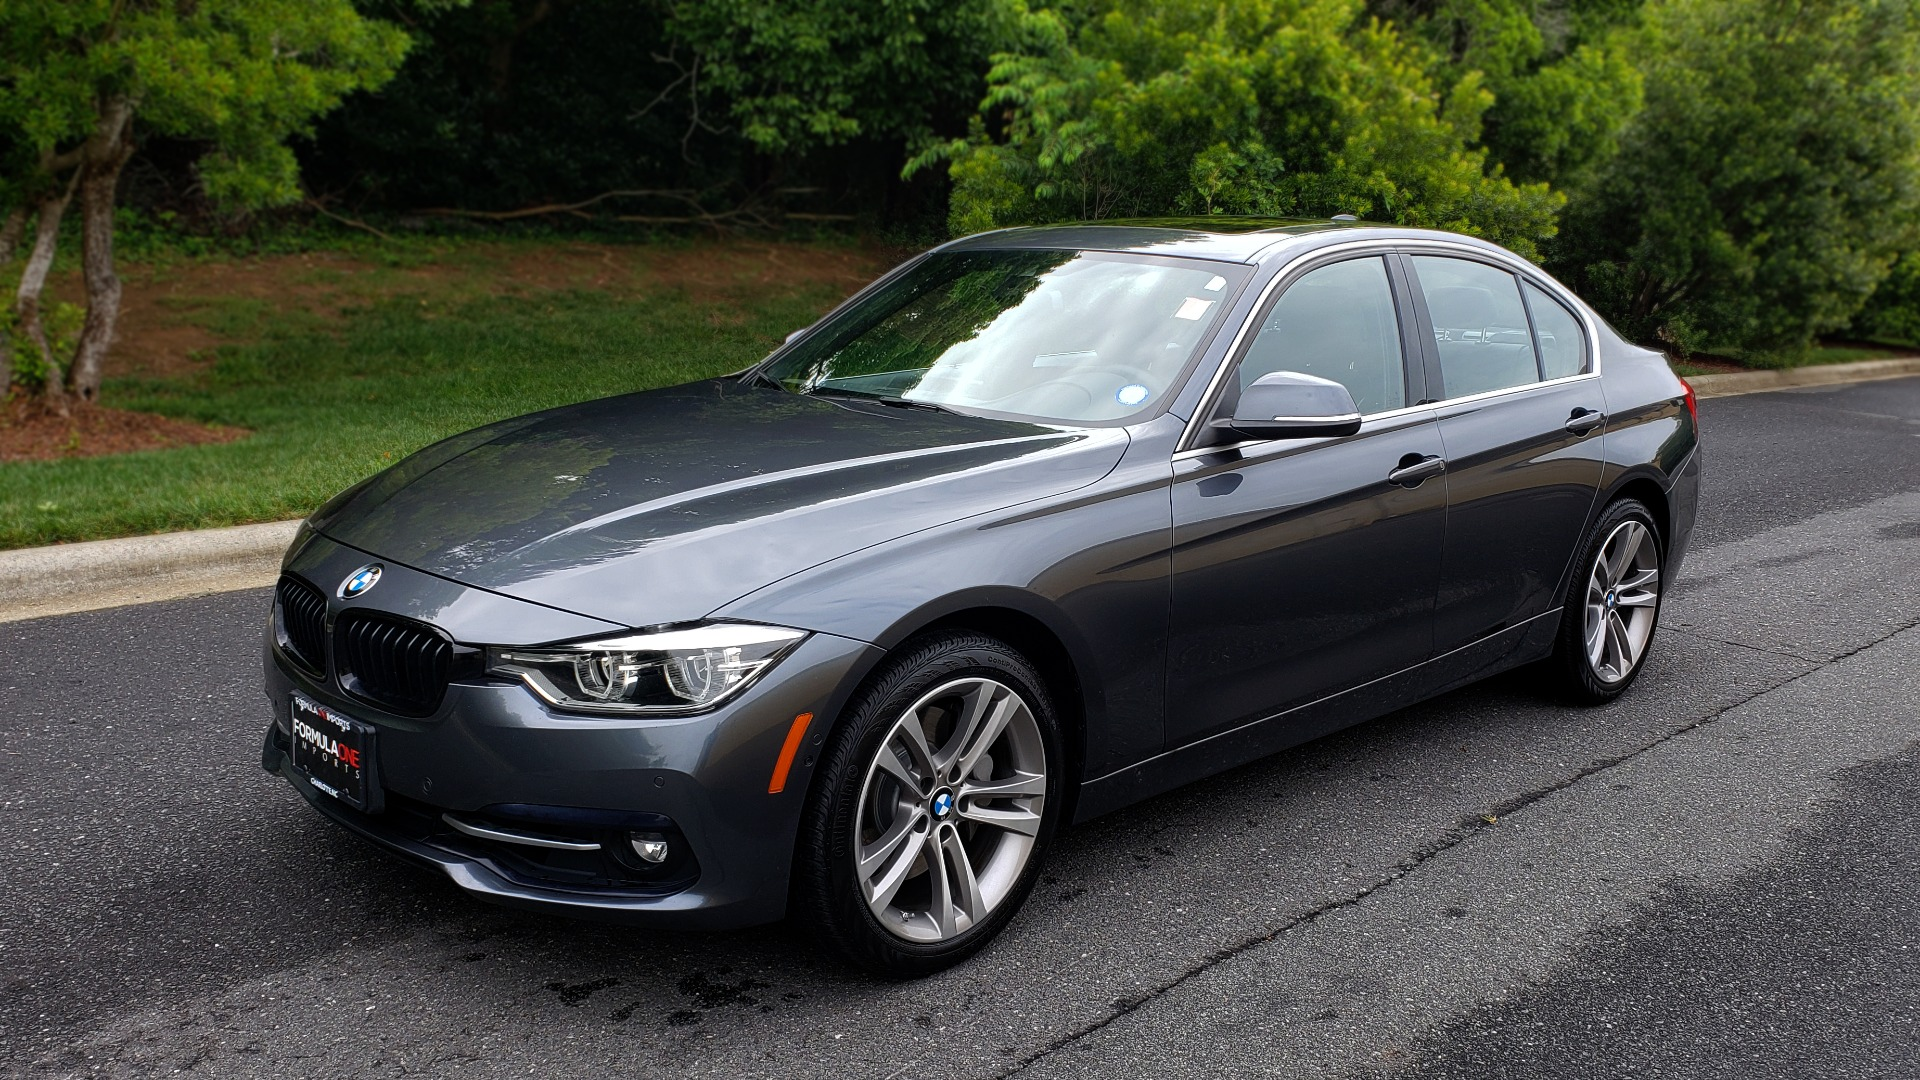 Used 2017 BMW 3 SERIES 340I XDRIVE SPORT / DRVR ASST PLUS / NAV / CLD WTHR / PARK ASST for sale Sold at Formula Imports in Charlotte NC 28227 1